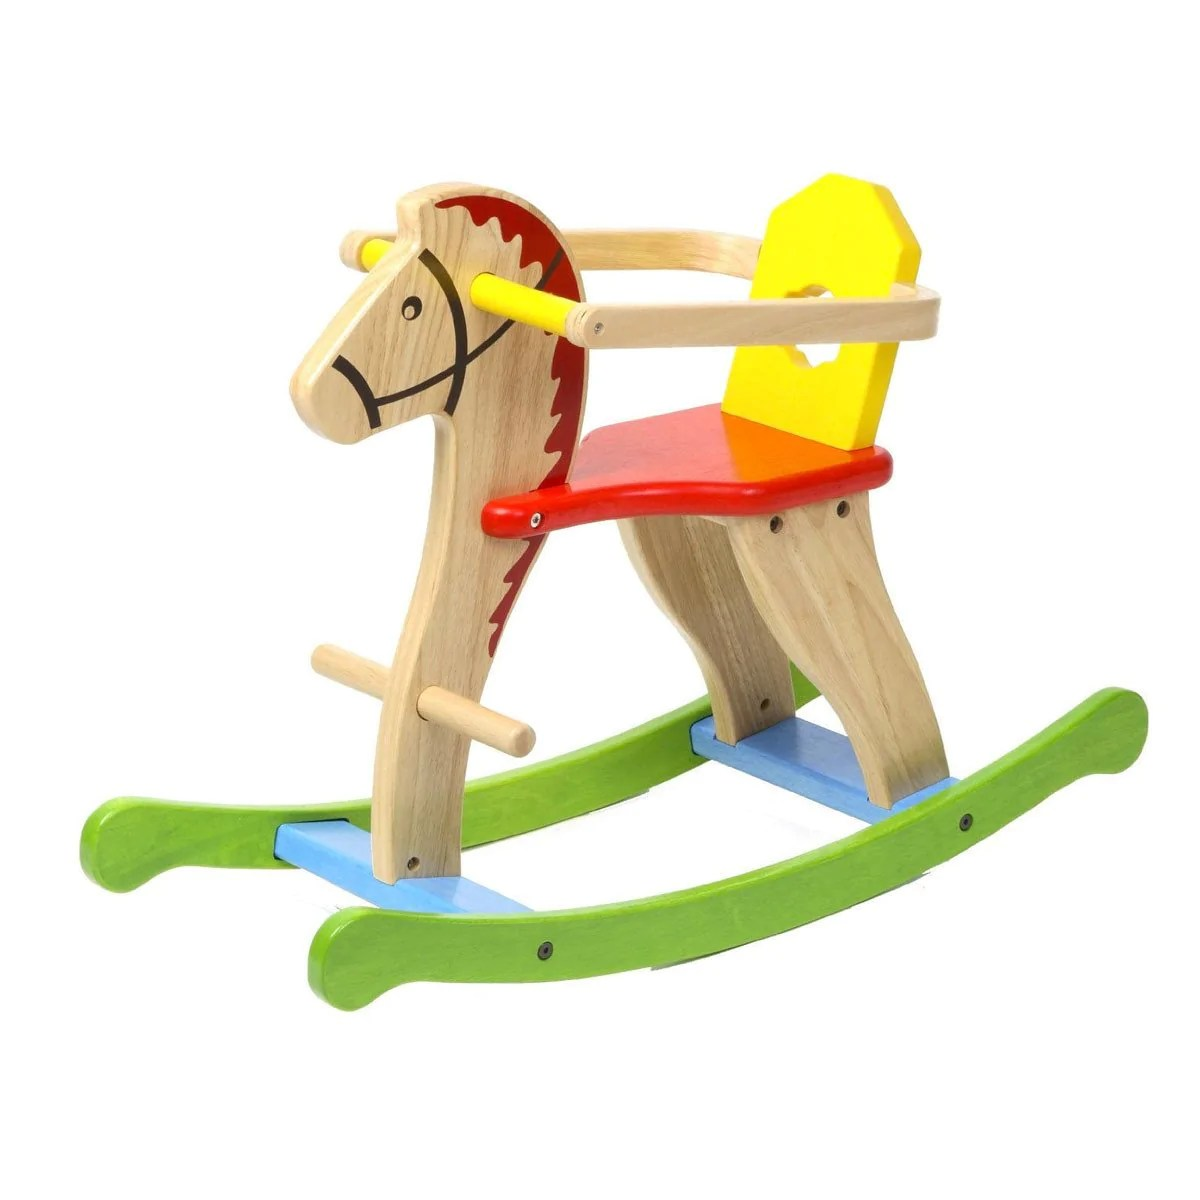 Elegant Removable Guard Colourful Little Classic Wooden Rocking Horse Removable Guard Colourful Little Earthnest Little Earth Nest Classic Wooden Rocking Horse inspiration Wooden Rocking Horse